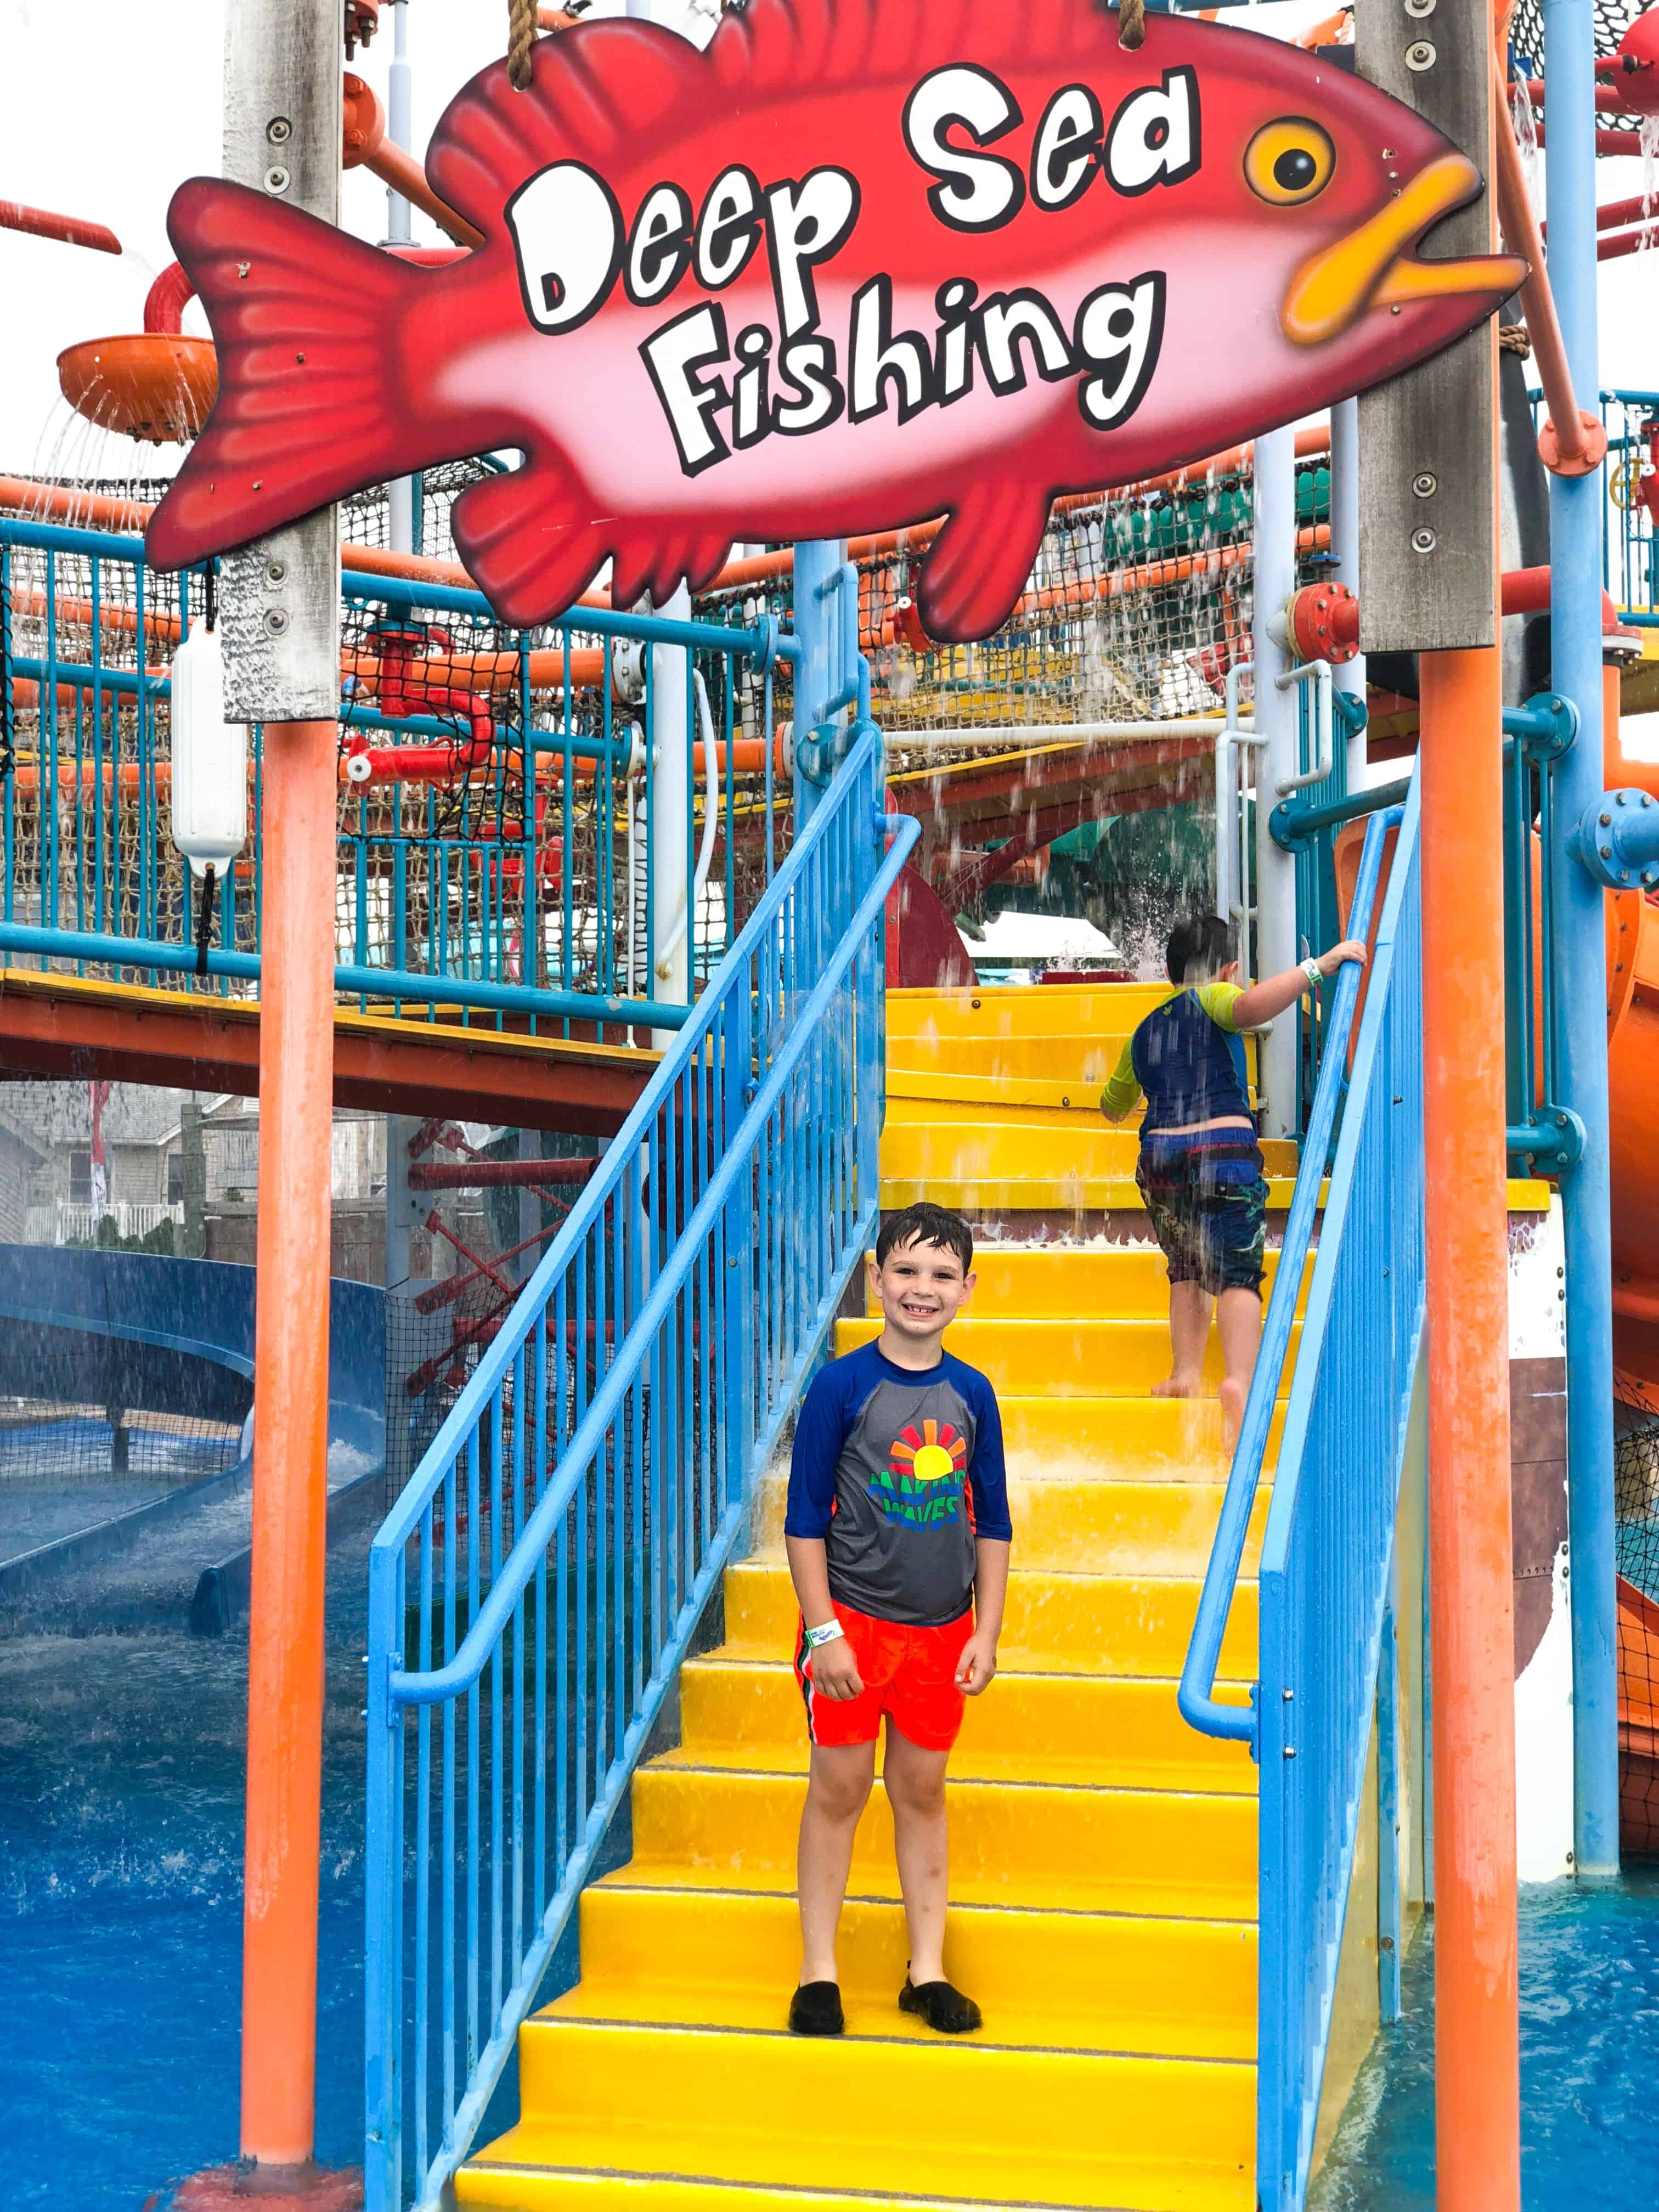 Attractions and family activities at Casino Pier and Breakwater Beach in Seaside, NJ. From water slides to rides, see our top 5 must-do's. #seasidenj #familyfun #njtravel #njentertainment #shorelife #summerfun